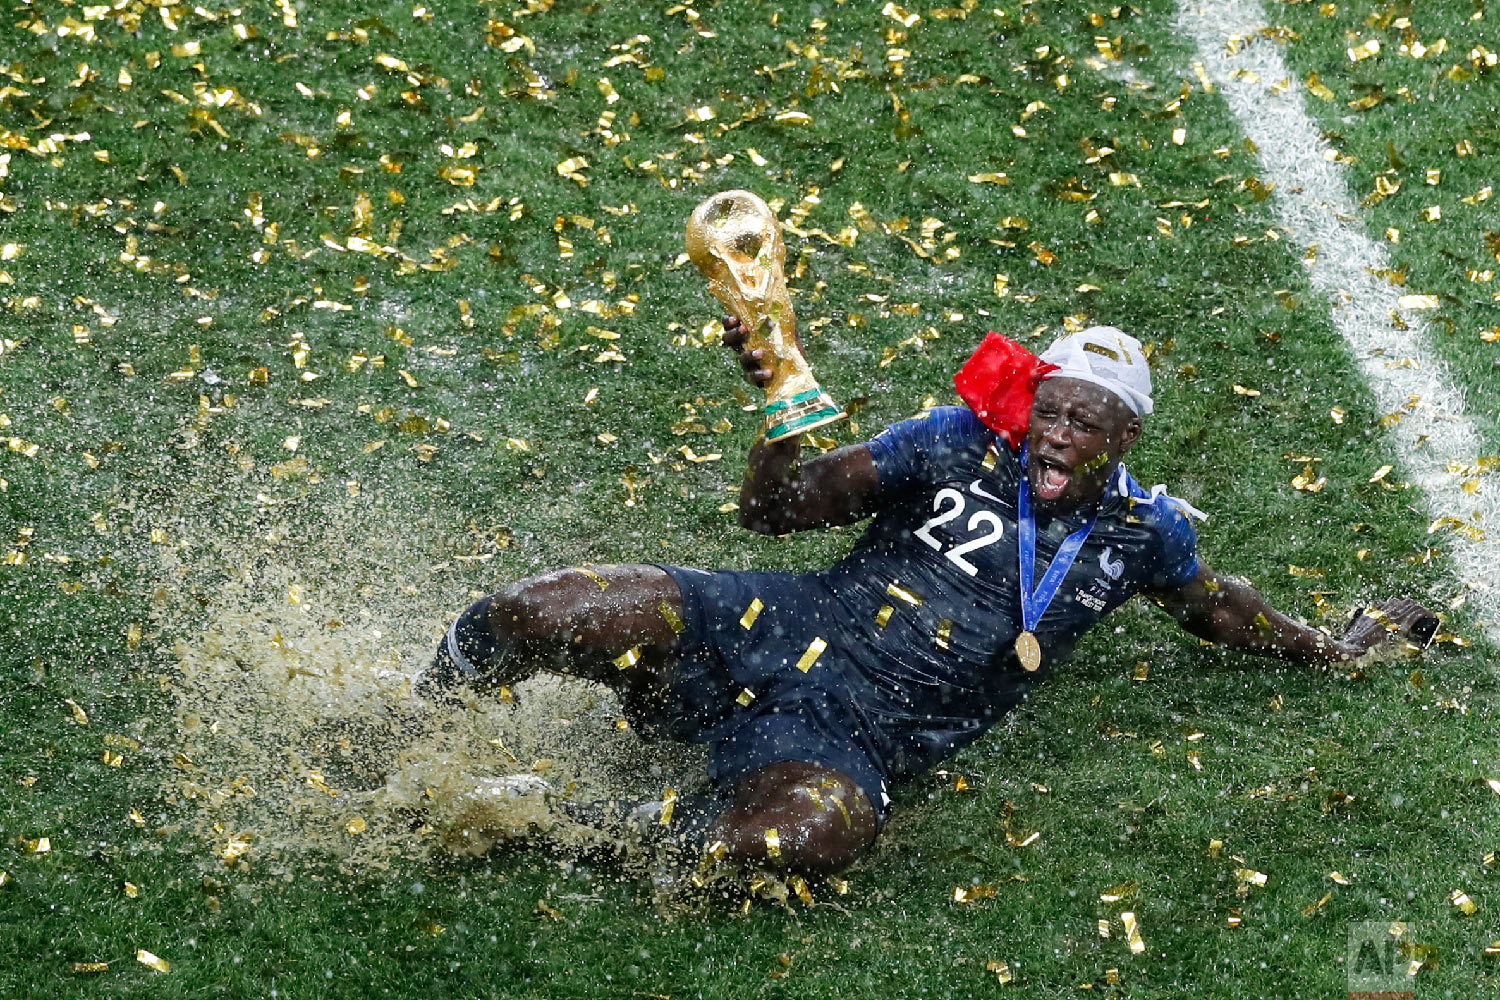 France's Benjamin Mendy celebrates with the trophy after his team won the final match against Croatia at the 2018 soccer World Cup in the Luzhniki Stadium in Moscow, Russia, on July 15, 2018. (AP Photo/Rebecca Blackwell)